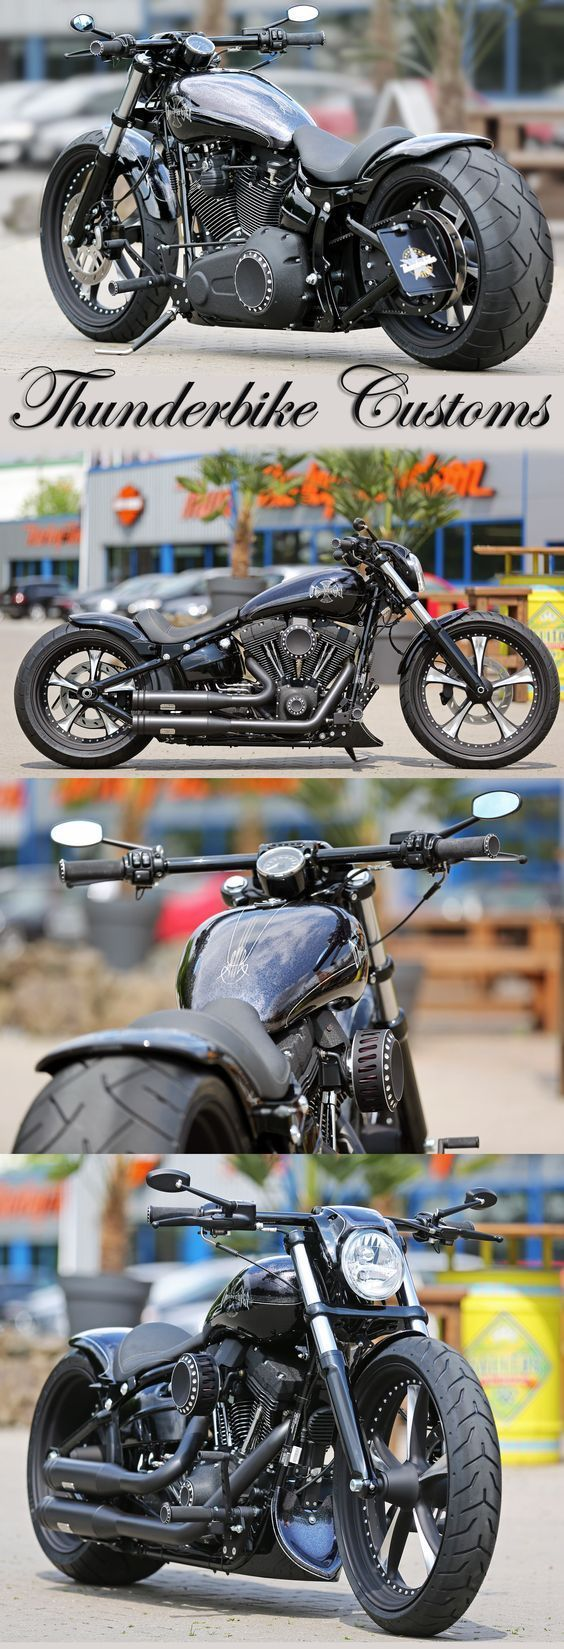 @PunIntendedMag Customized Harley-Davidson Softail Breakout by Thunderbike. http://punintendednews.club For this project we added a long list of our custom parts like the Lowrider wheels, rear-fender Kit, Air-Ride suspension, custom tank, forward controls and much more.: #harleydavidsonbreakoutbobber